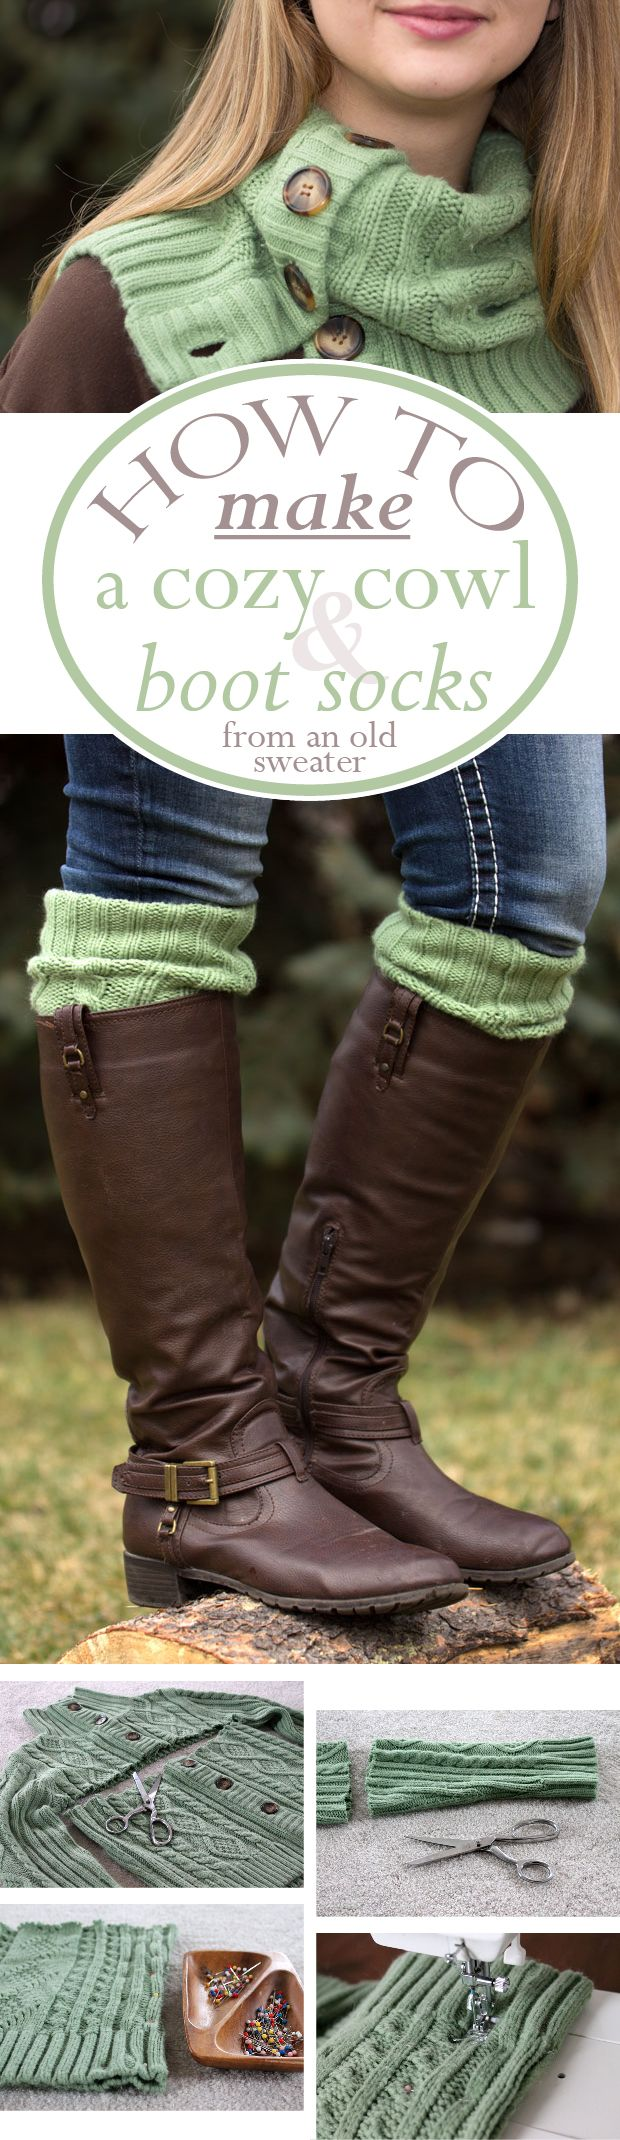 Use old, button down sweaters to make cozy cowls and boot socks! Reinventing and…